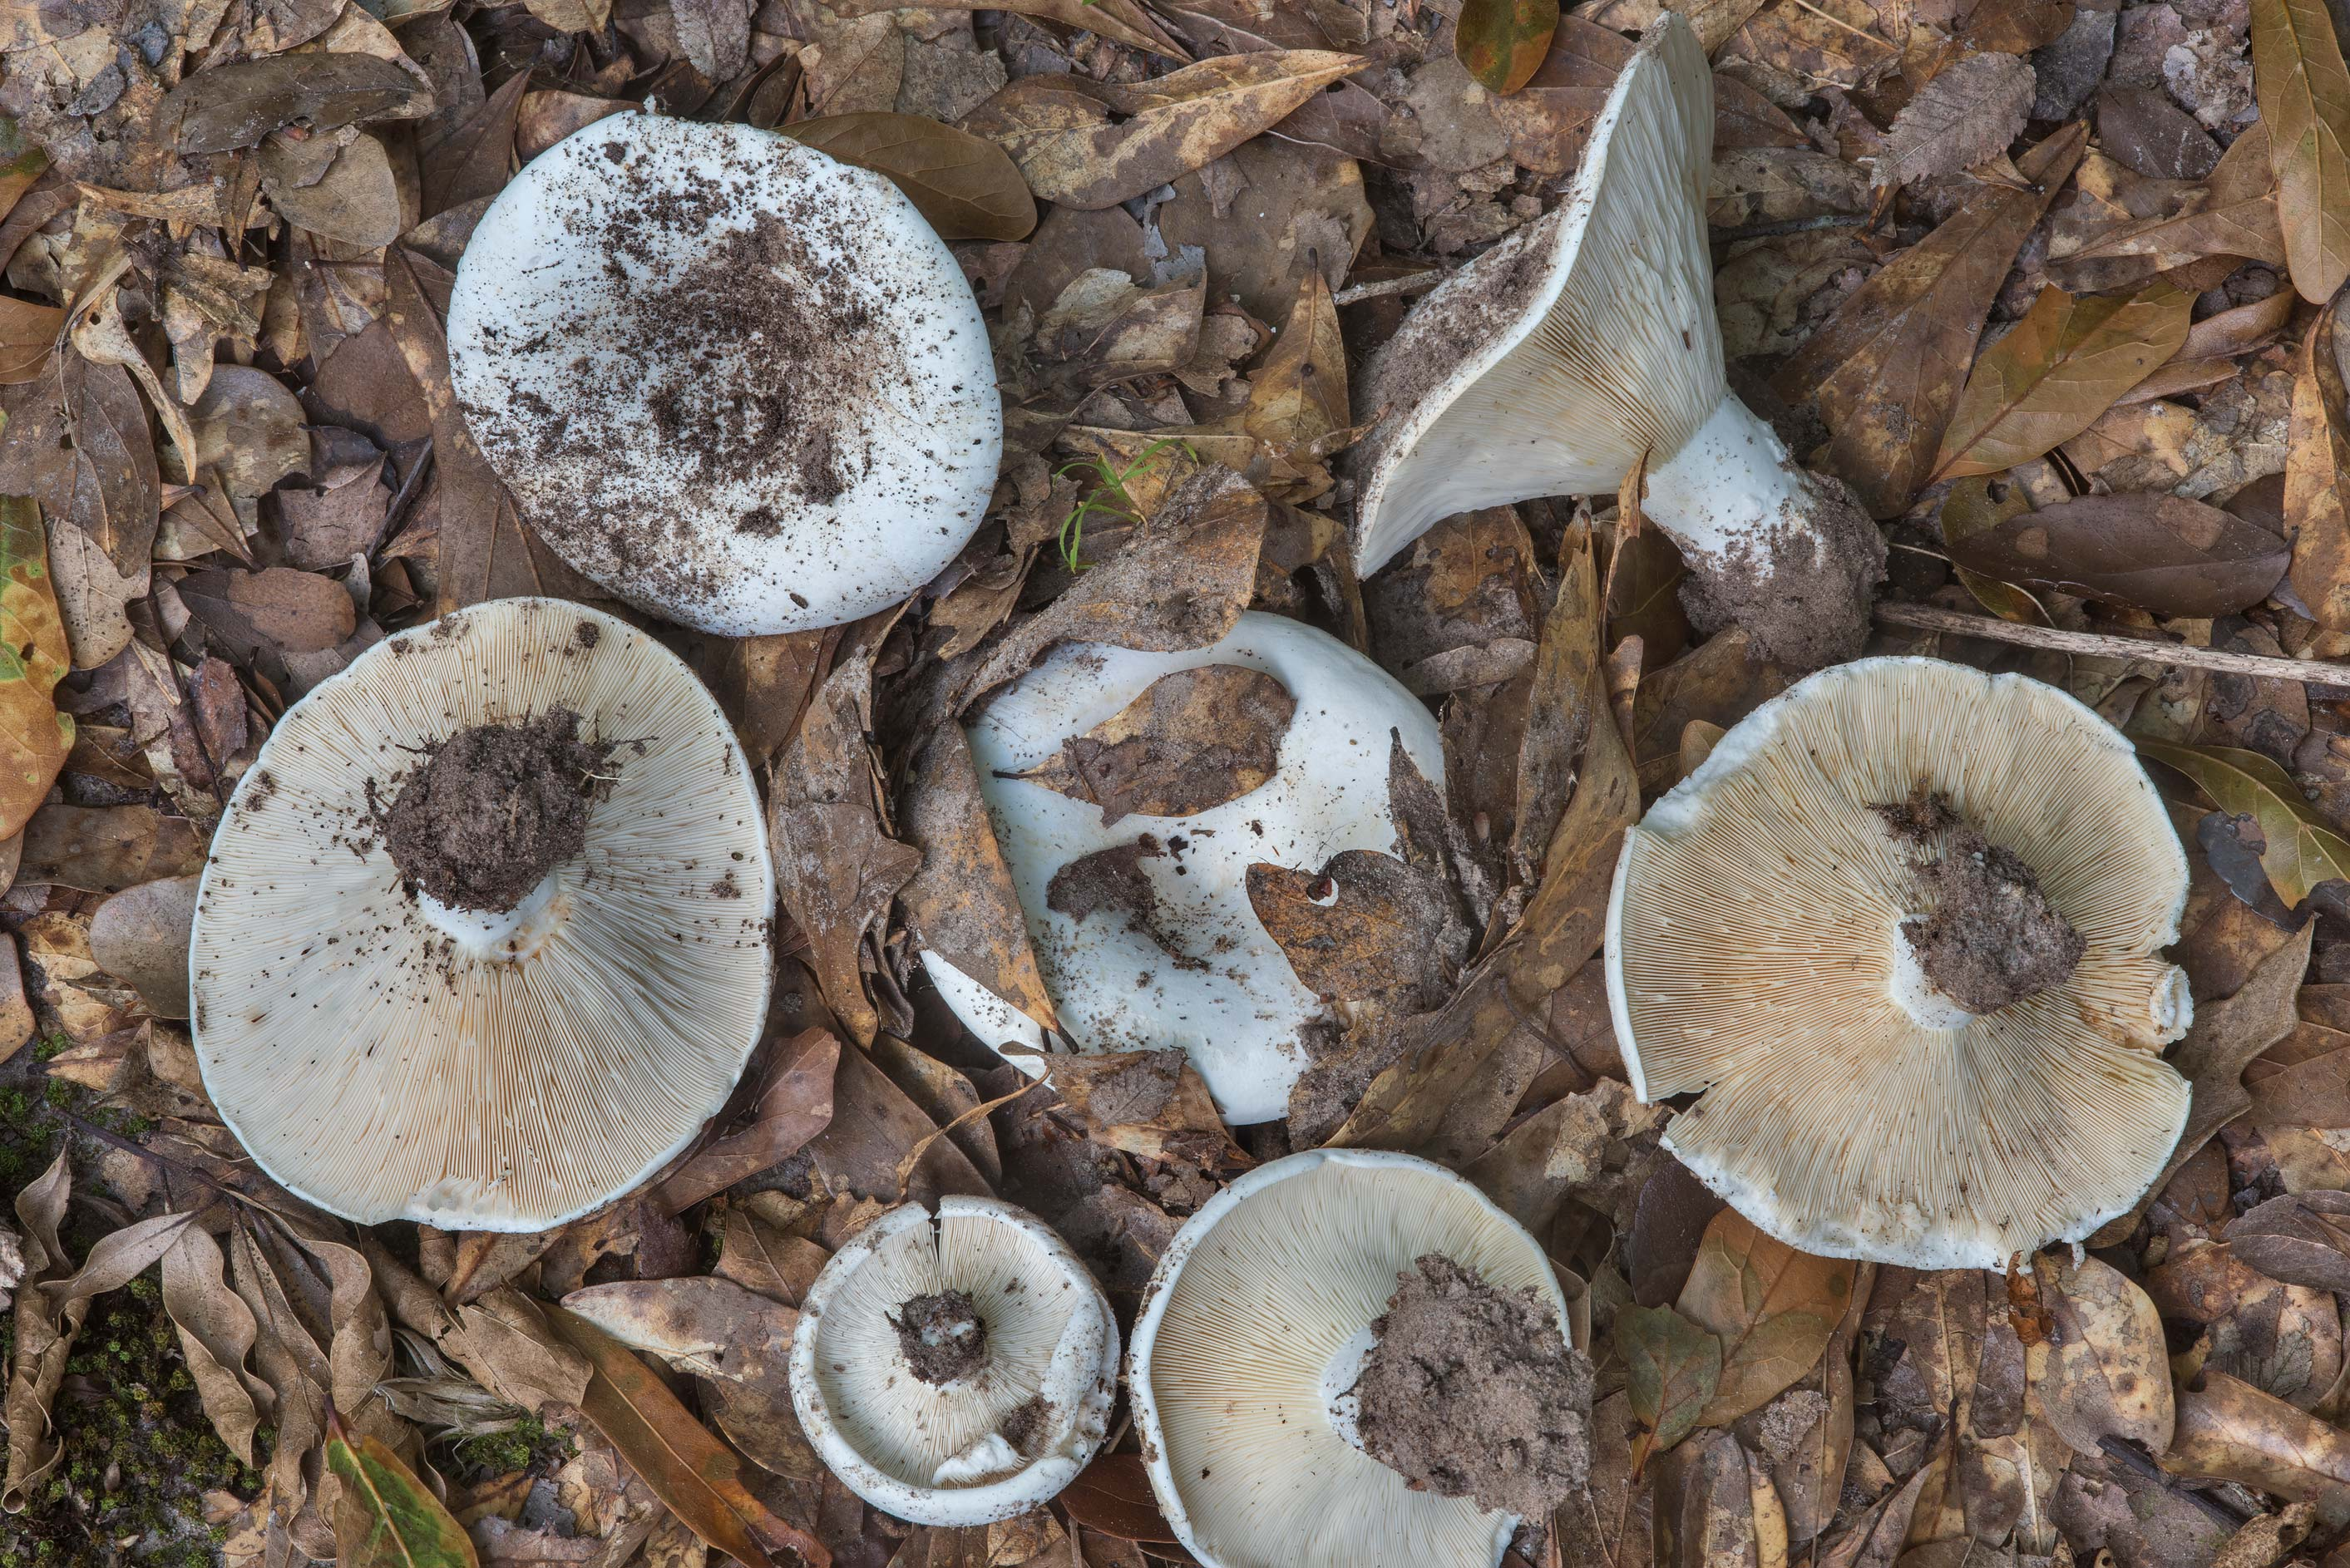 Milkcap mushrooms Lactarius piperatus (Lactifluus...Creek Park. College Station, Texas